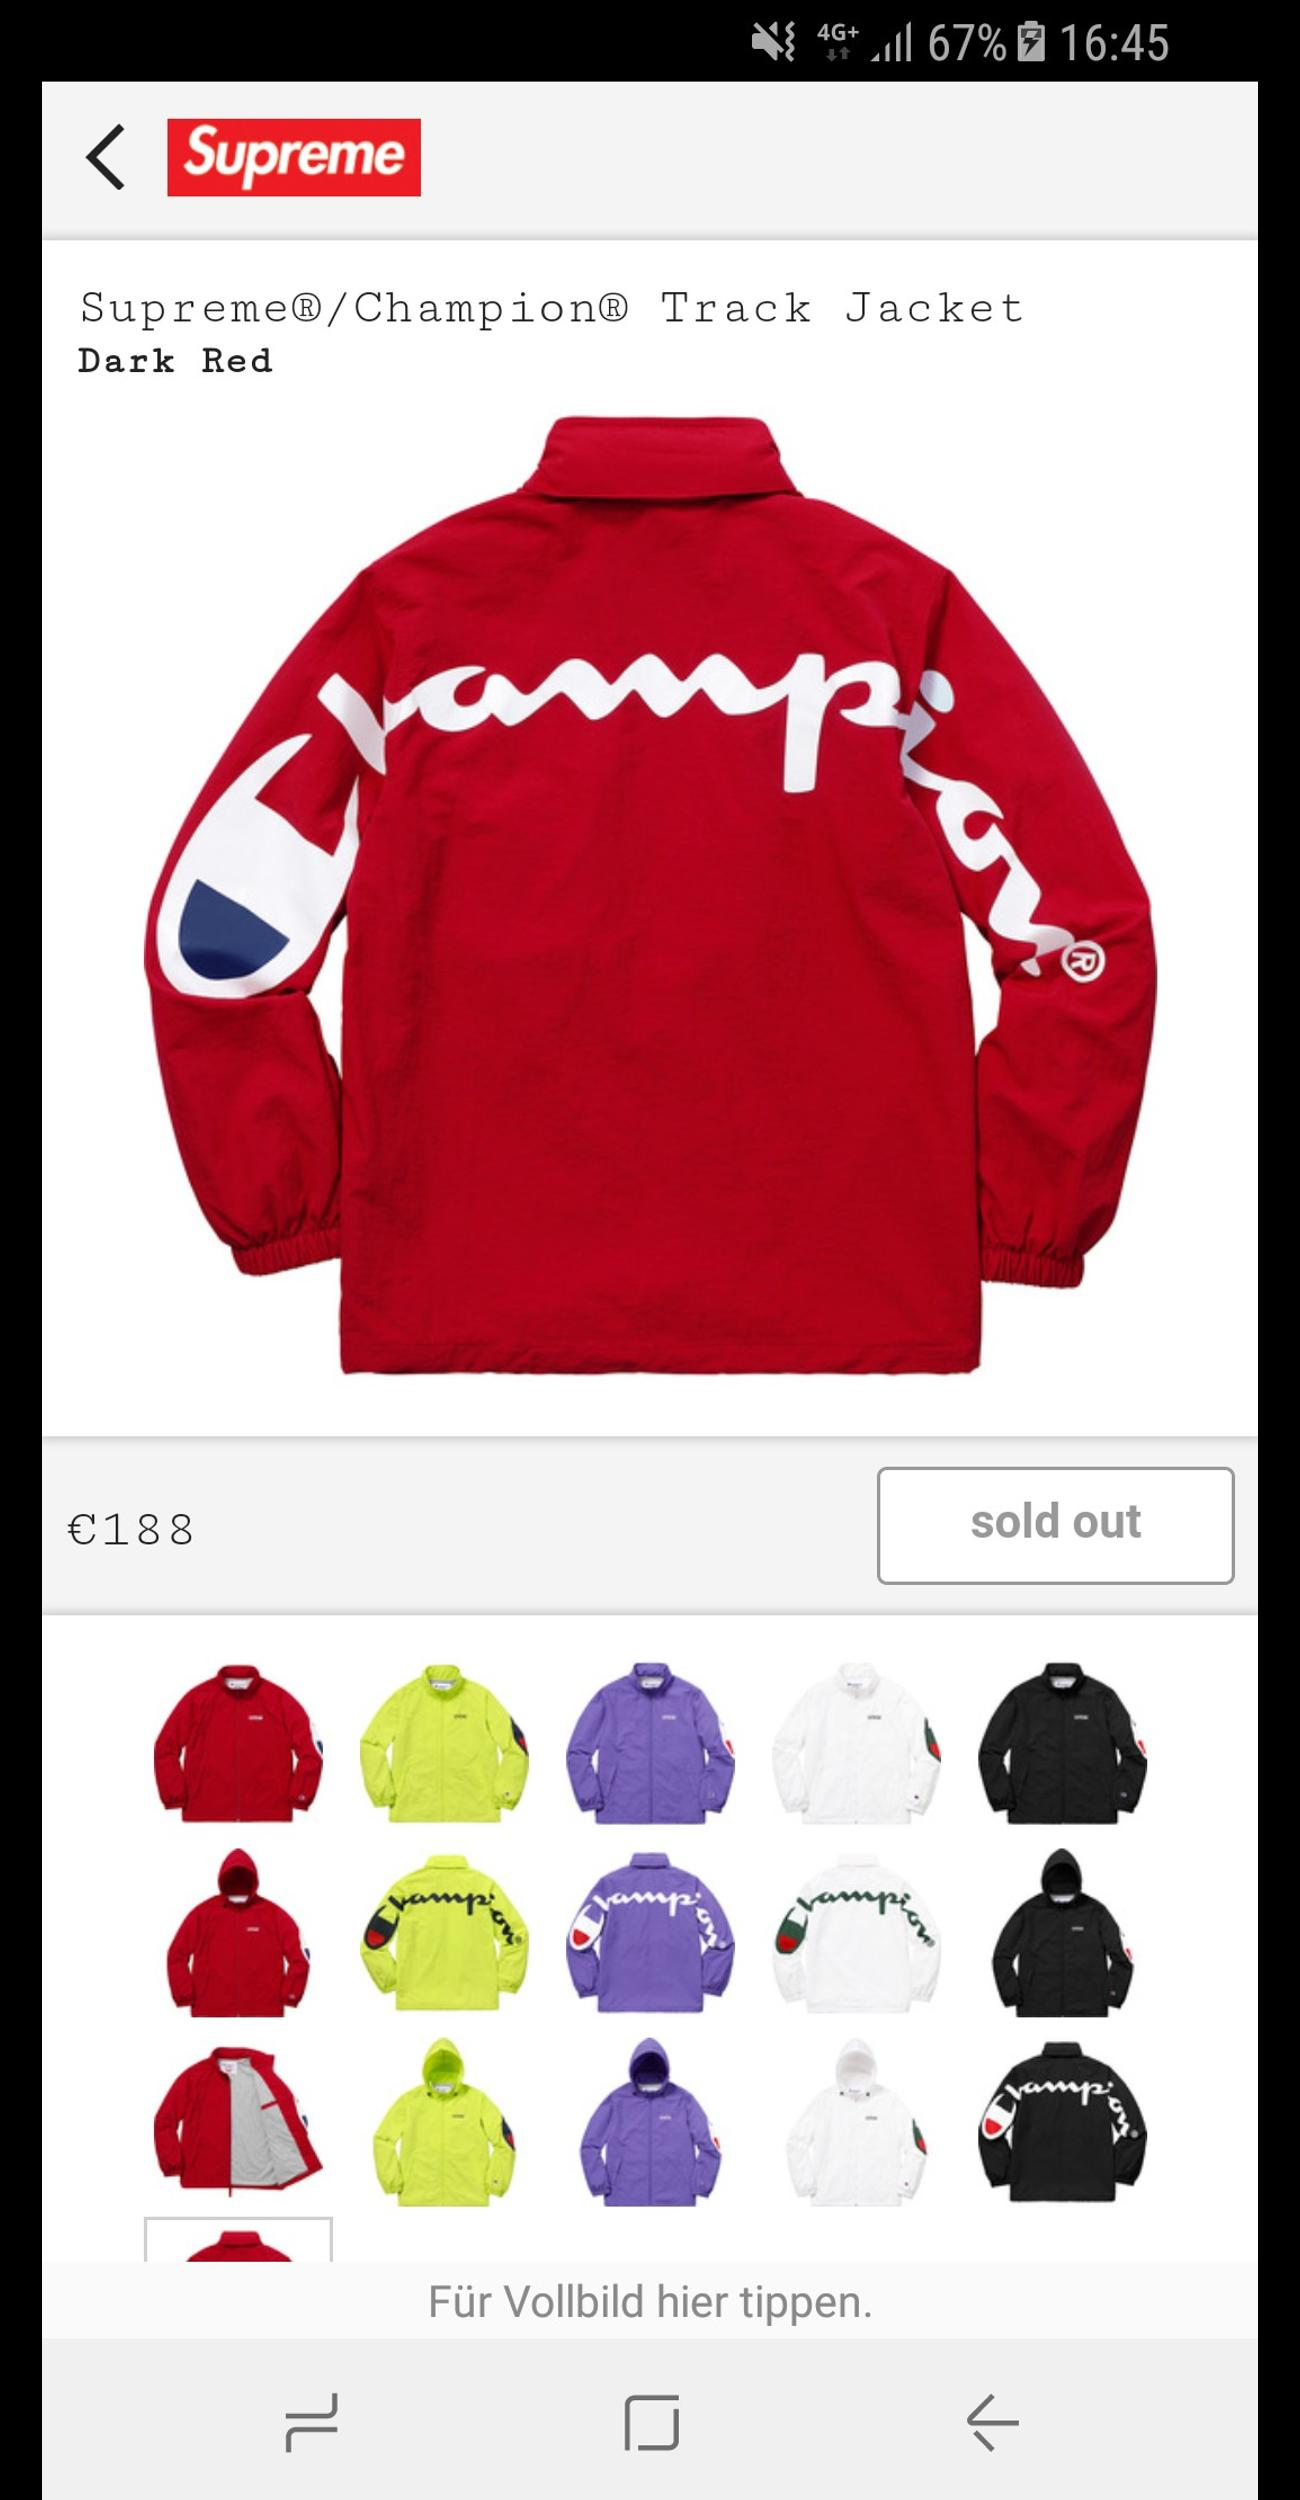 946efb3c19dbf Supreme x Champion Jacket in 1030 Wien for €200.00 for sale - Shpock